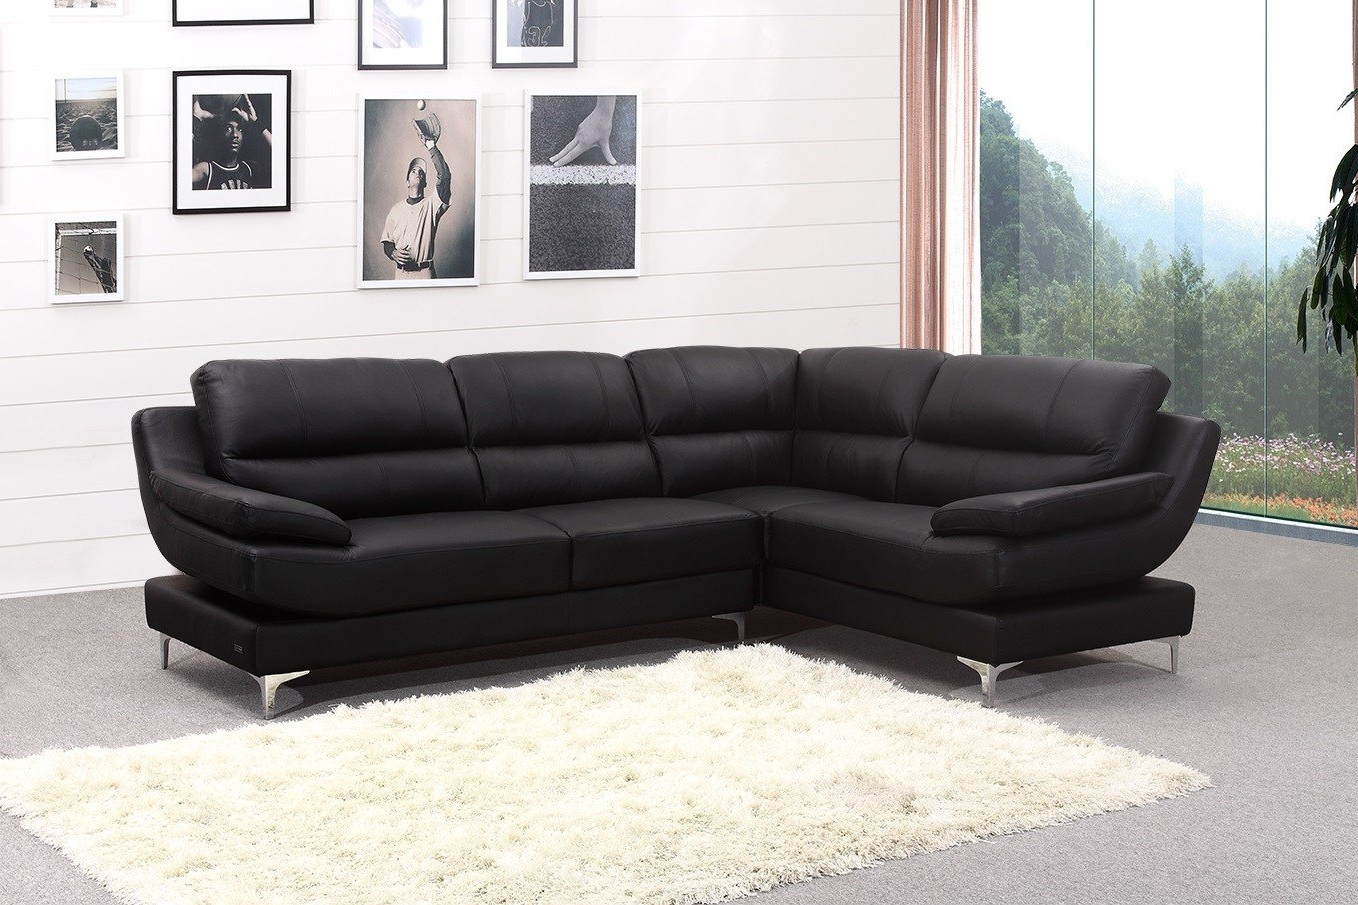 Widely Used Leather Corner Sofas Inside New Ideas Leather Corner Sofas With Corner Sofa Leather Brown (View 15 of 15)